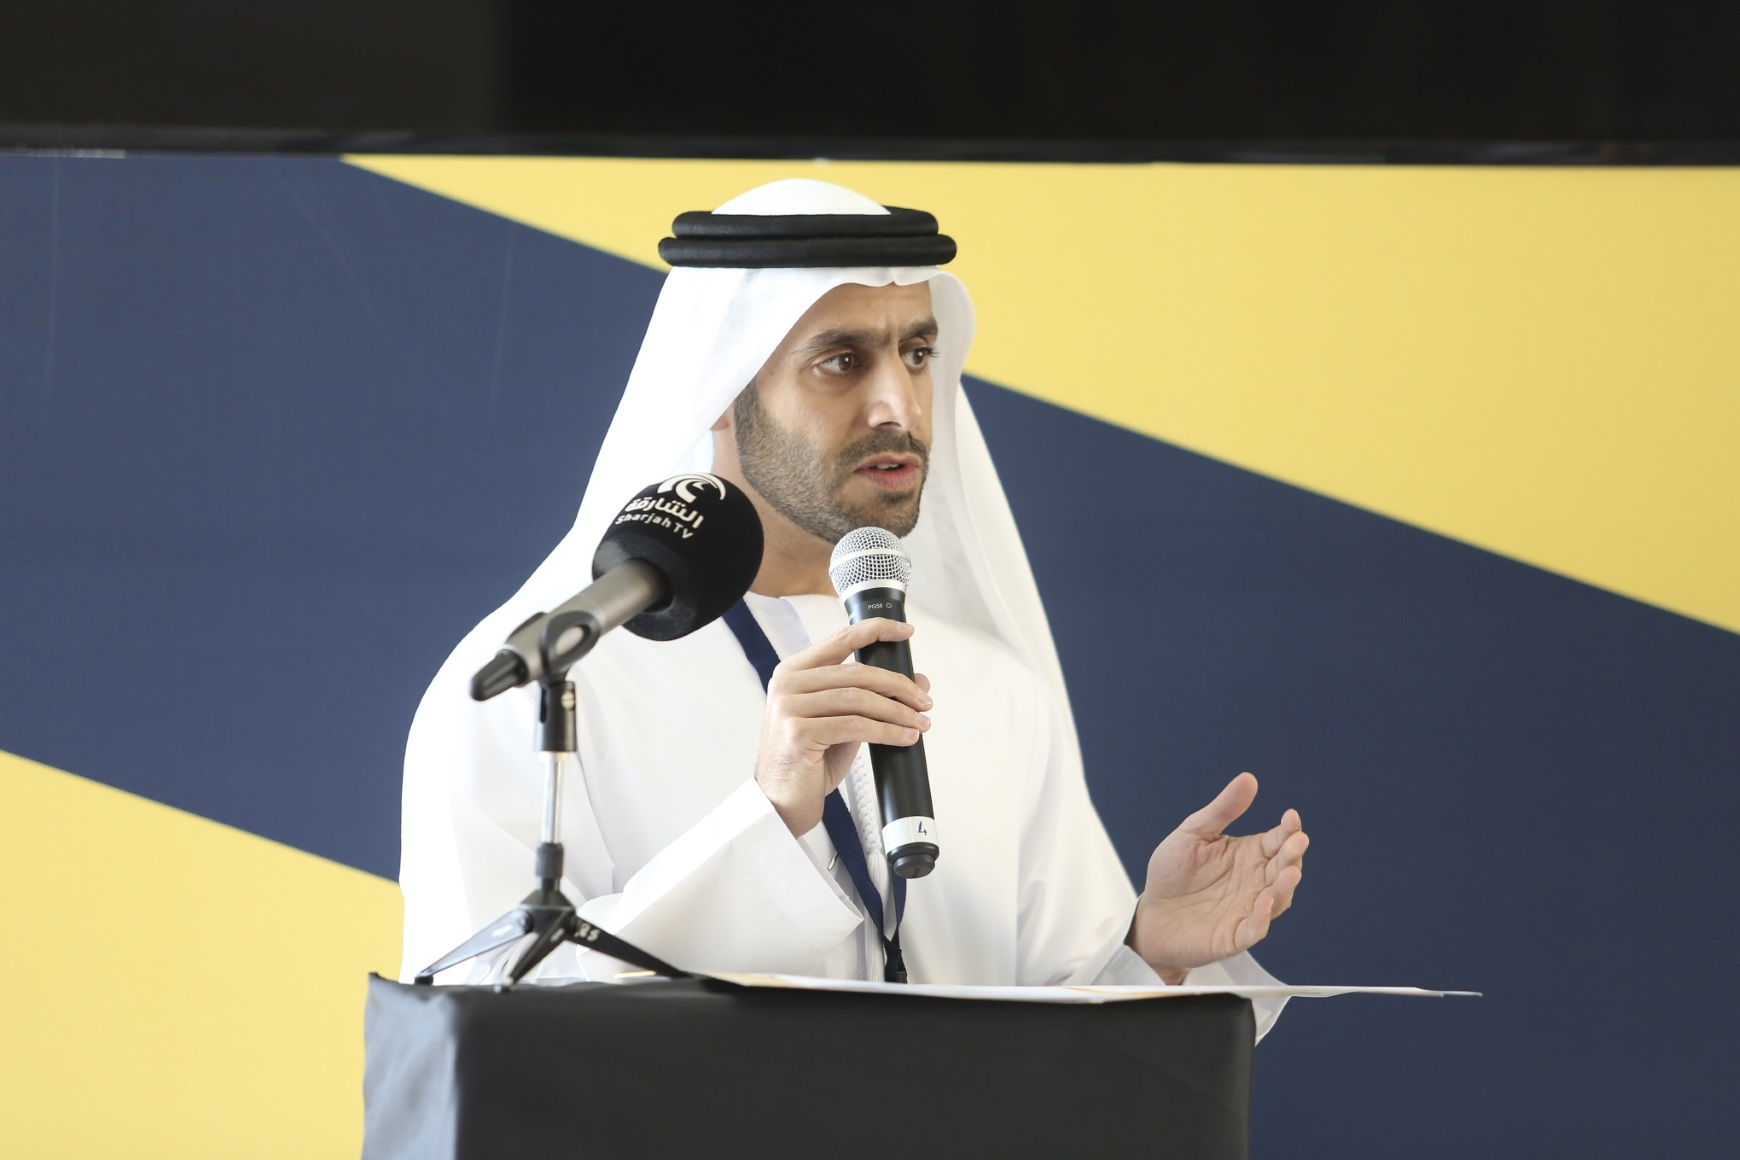 Sharjah-Japan event discusses business and trade opportunities